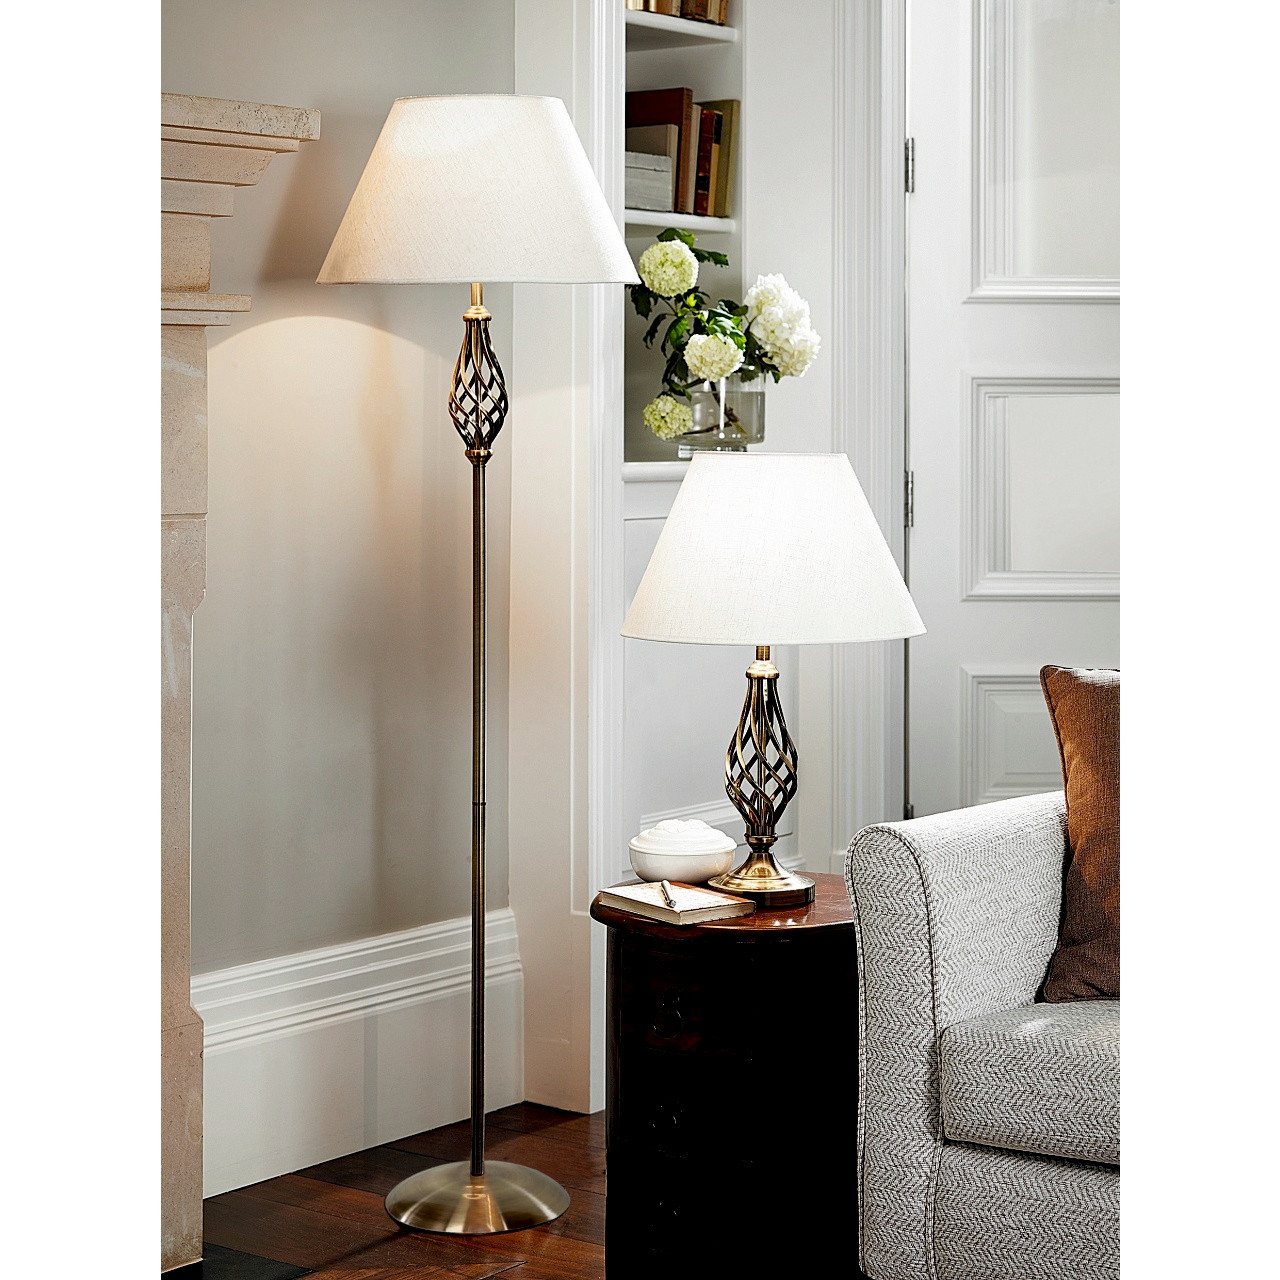 Picture of: Barley Twist Table And Floor Lamp Set With Free 4w 8w Led Bulbs Scotts Of Stow